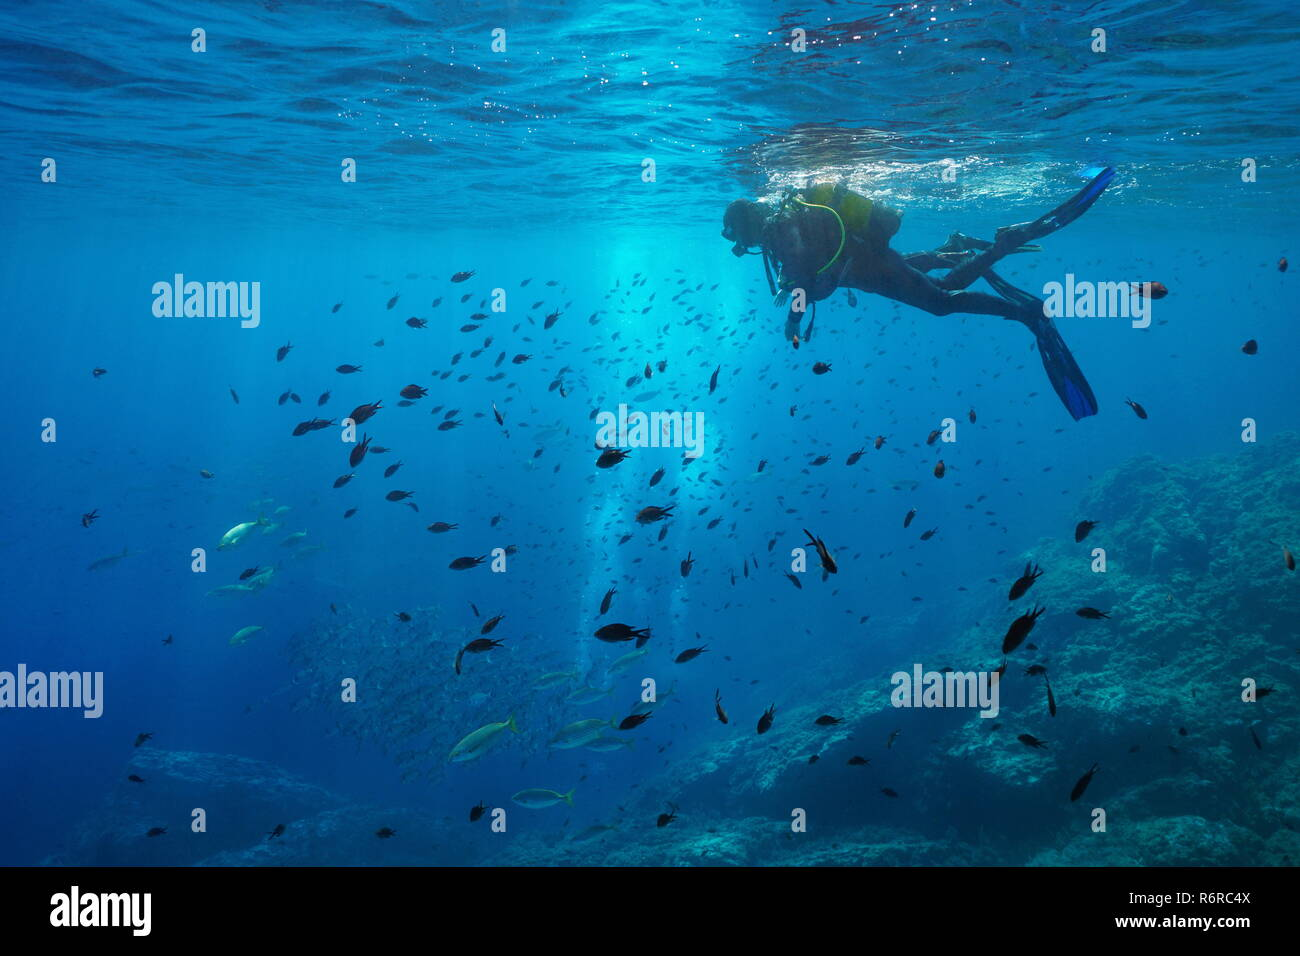 Scuba diver on water surface look at shoal of fish underwater, Mediterranean sea, Medes Islands, Costa Brava, Spain - Stock Image